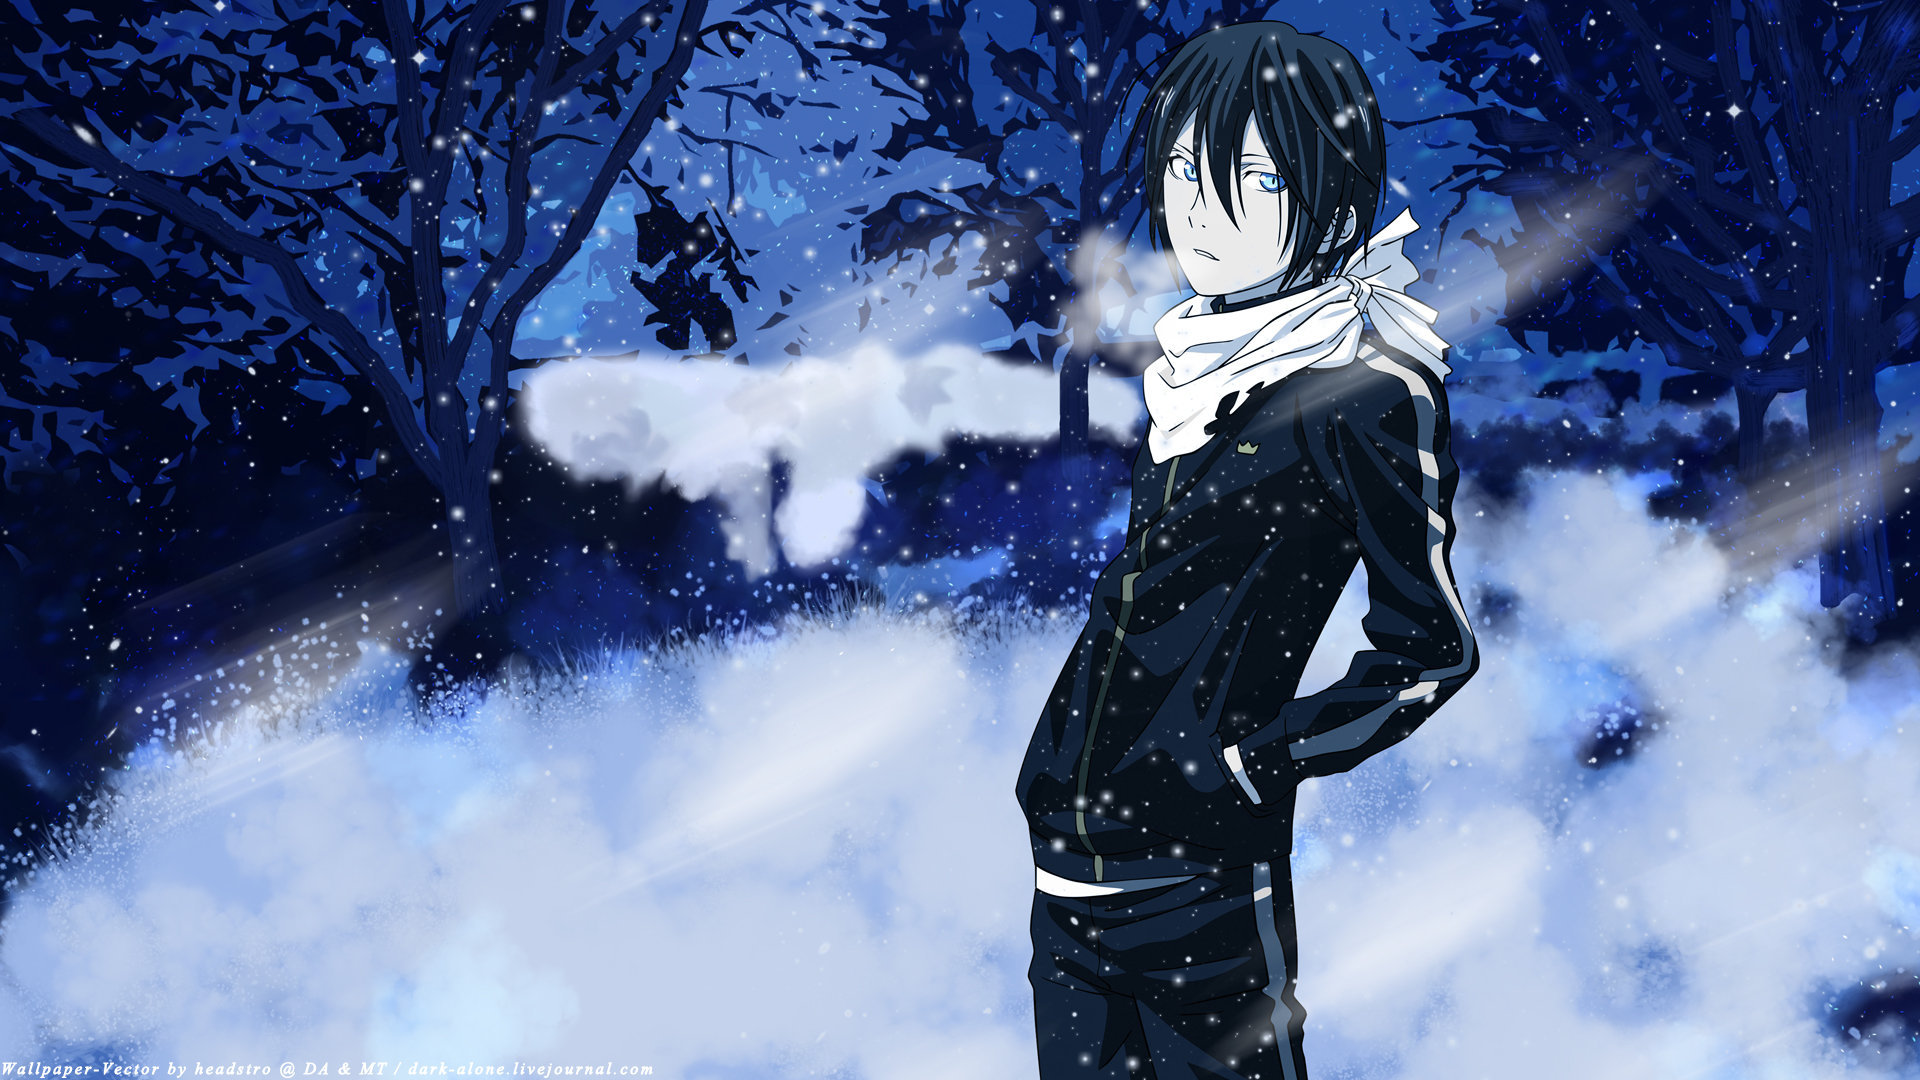 Anime Character Male Wallpaper